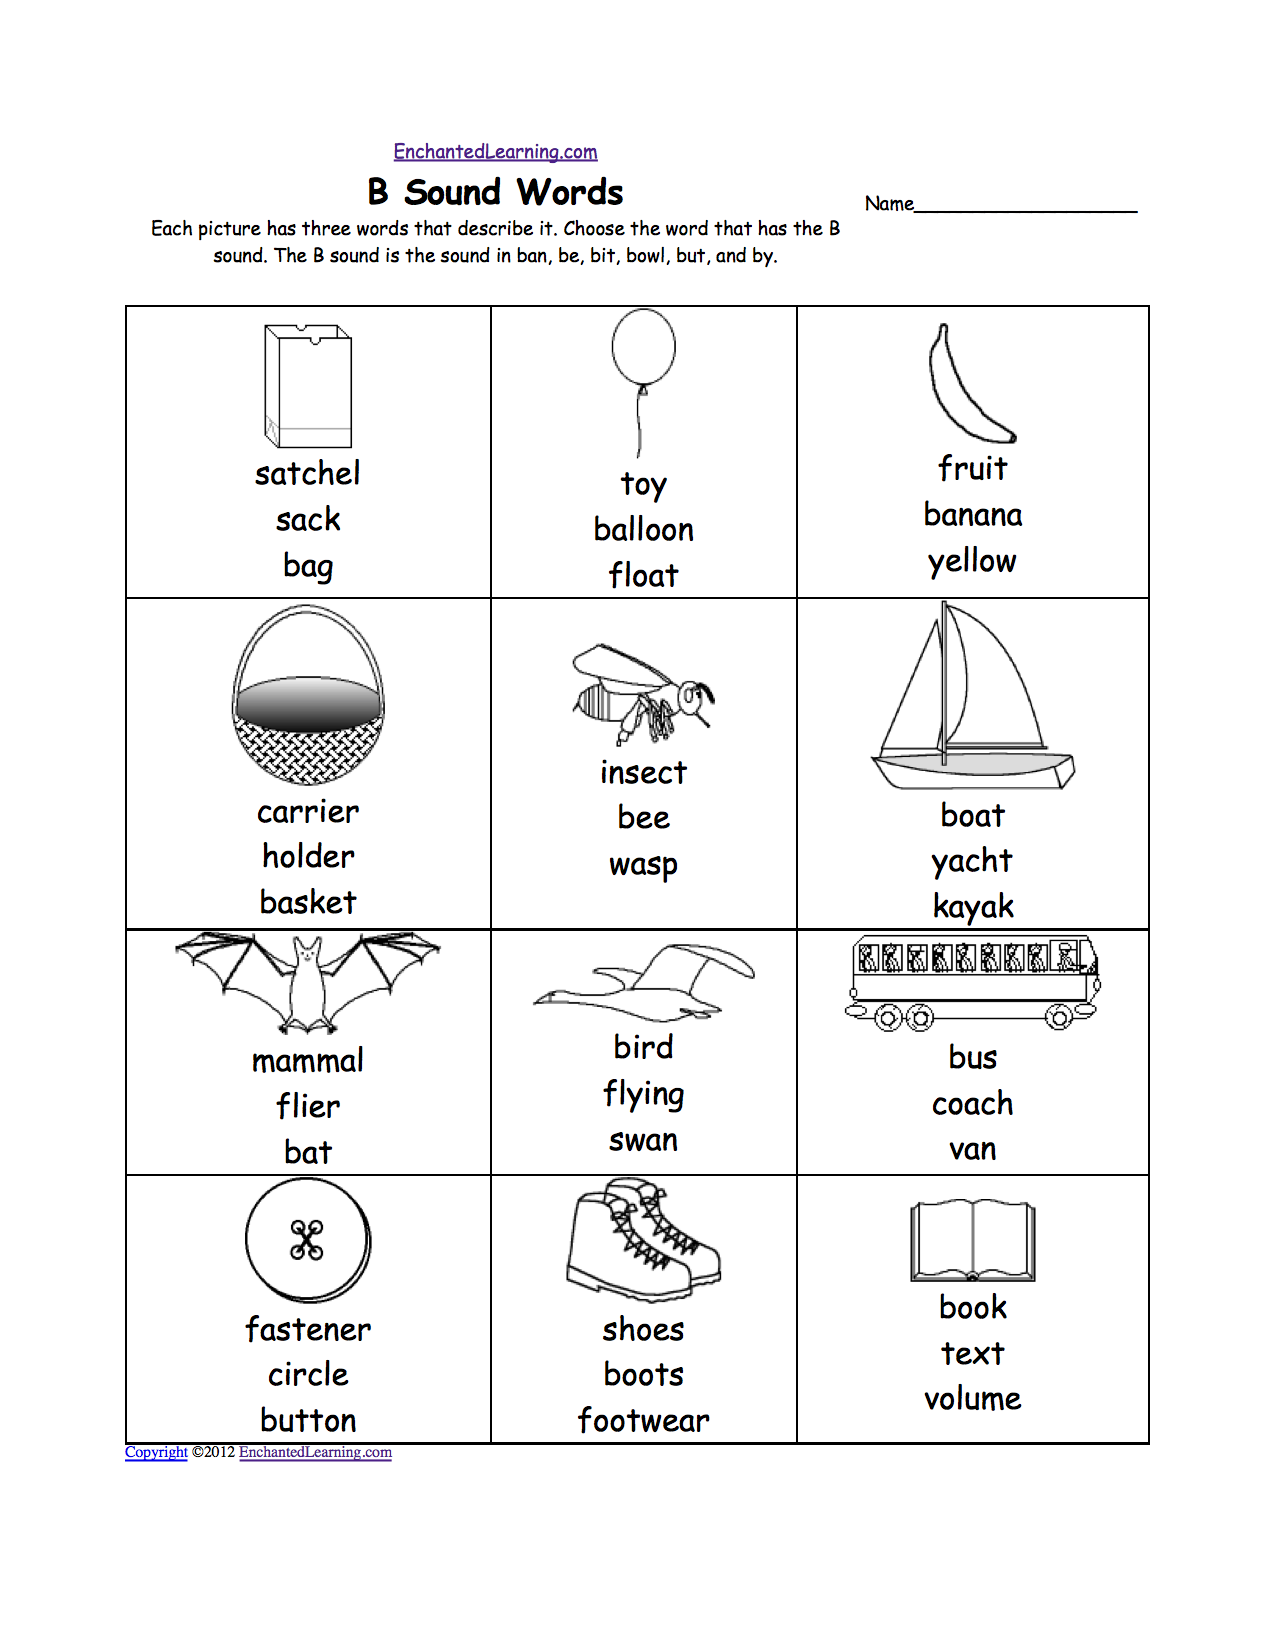 Proatmealus  Terrific Phonics Worksheets Multiple Choice Worksheets To Print  With Hot Quotbquot Sound Phonics Worksheet Multiple Choice Each Picture Has Three Words That Describe It Choose The Word That Has A Quotbquot Sound The Quotbquot Sound Is The Sound  With Delectable Free Printable Math Worksheets For Adults Also Cell Parts Worksheet In Addition Science Variables Worksheet And Equation Worksheet As Well As Radioactive Decay And Half Life Worksheet Answers Additionally America The Story Of Us Episode  Worksheet From Enchantedlearningcom With Proatmealus  Hot Phonics Worksheets Multiple Choice Worksheets To Print  With Delectable Quotbquot Sound Phonics Worksheet Multiple Choice Each Picture Has Three Words That Describe It Choose The Word That Has A Quotbquot Sound The Quotbquot Sound Is The Sound  And Terrific Free Printable Math Worksheets For Adults Also Cell Parts Worksheet In Addition Science Variables Worksheet From Enchantedlearningcom